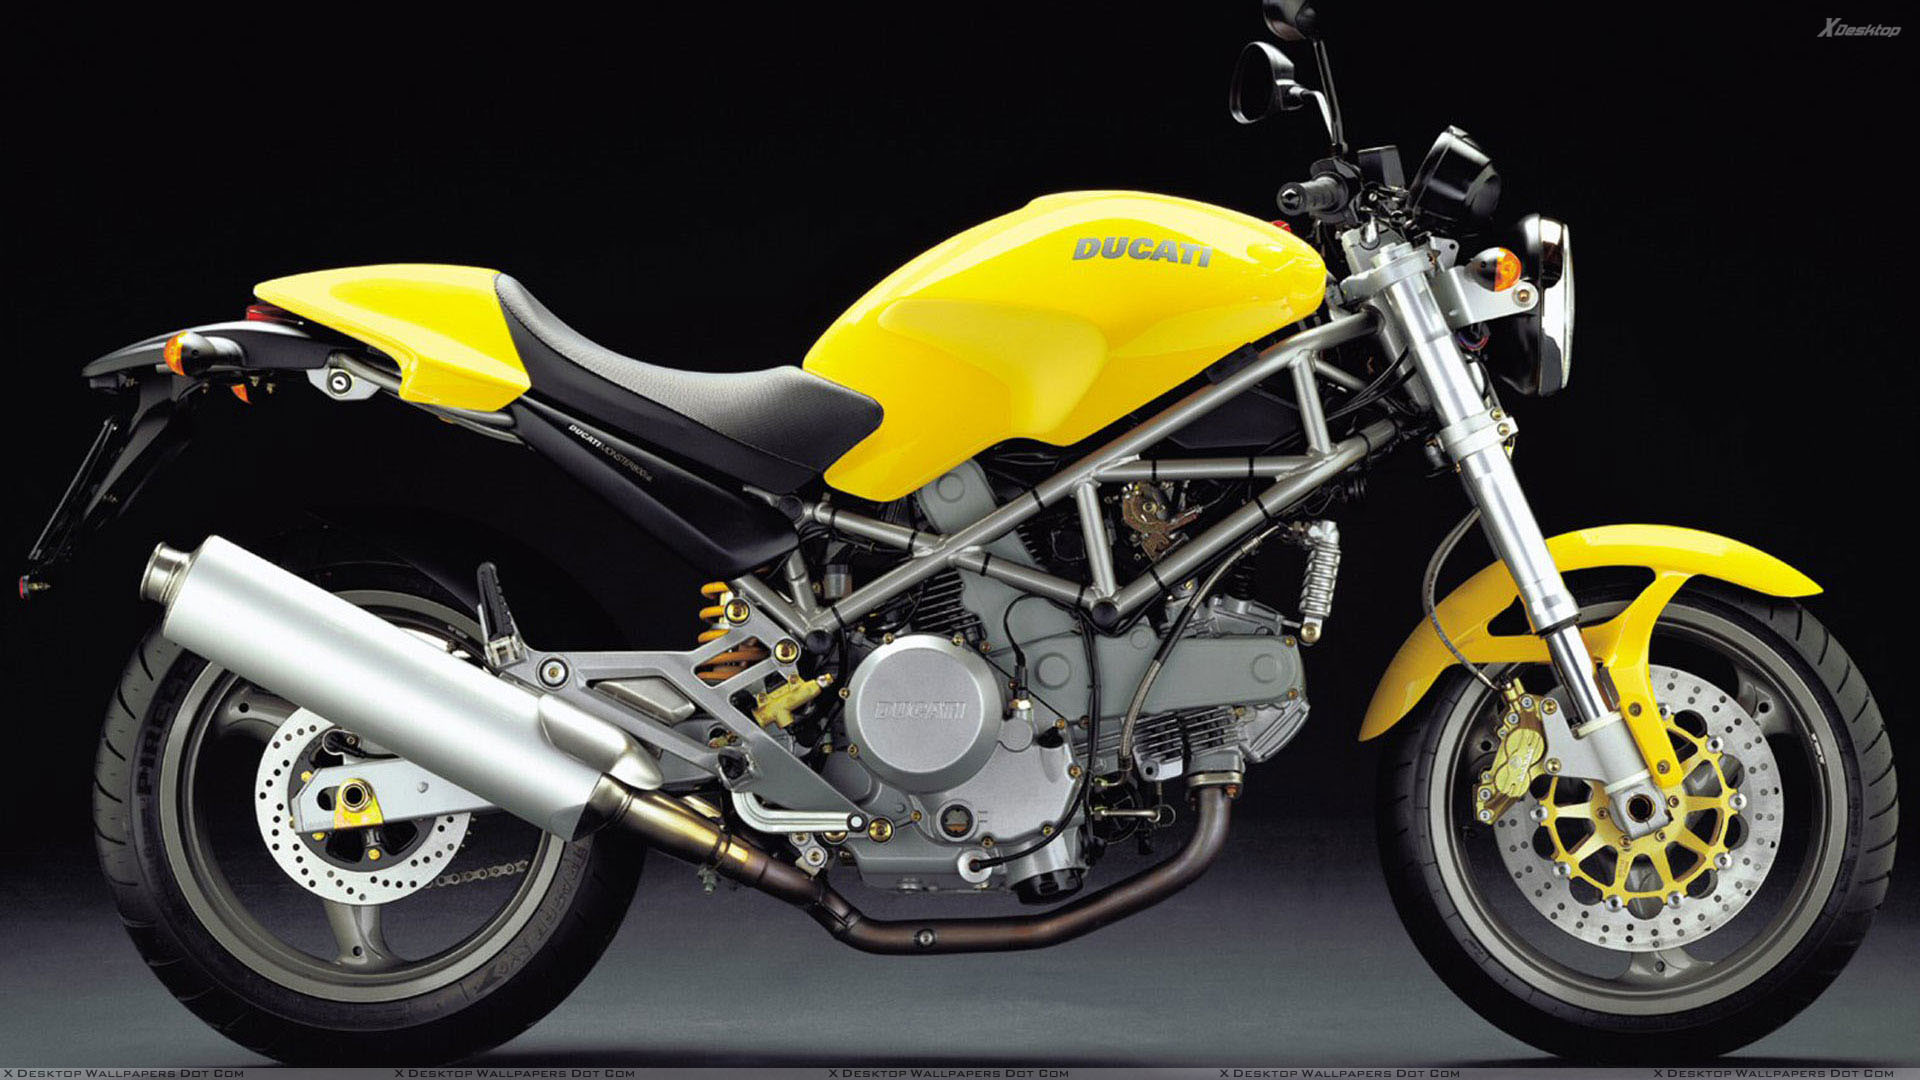 1920x1080 Ducati Motorcycle Yellow Unique Ducati Monster 800 2004 In Yellow Side Pose  Wallpaper ...